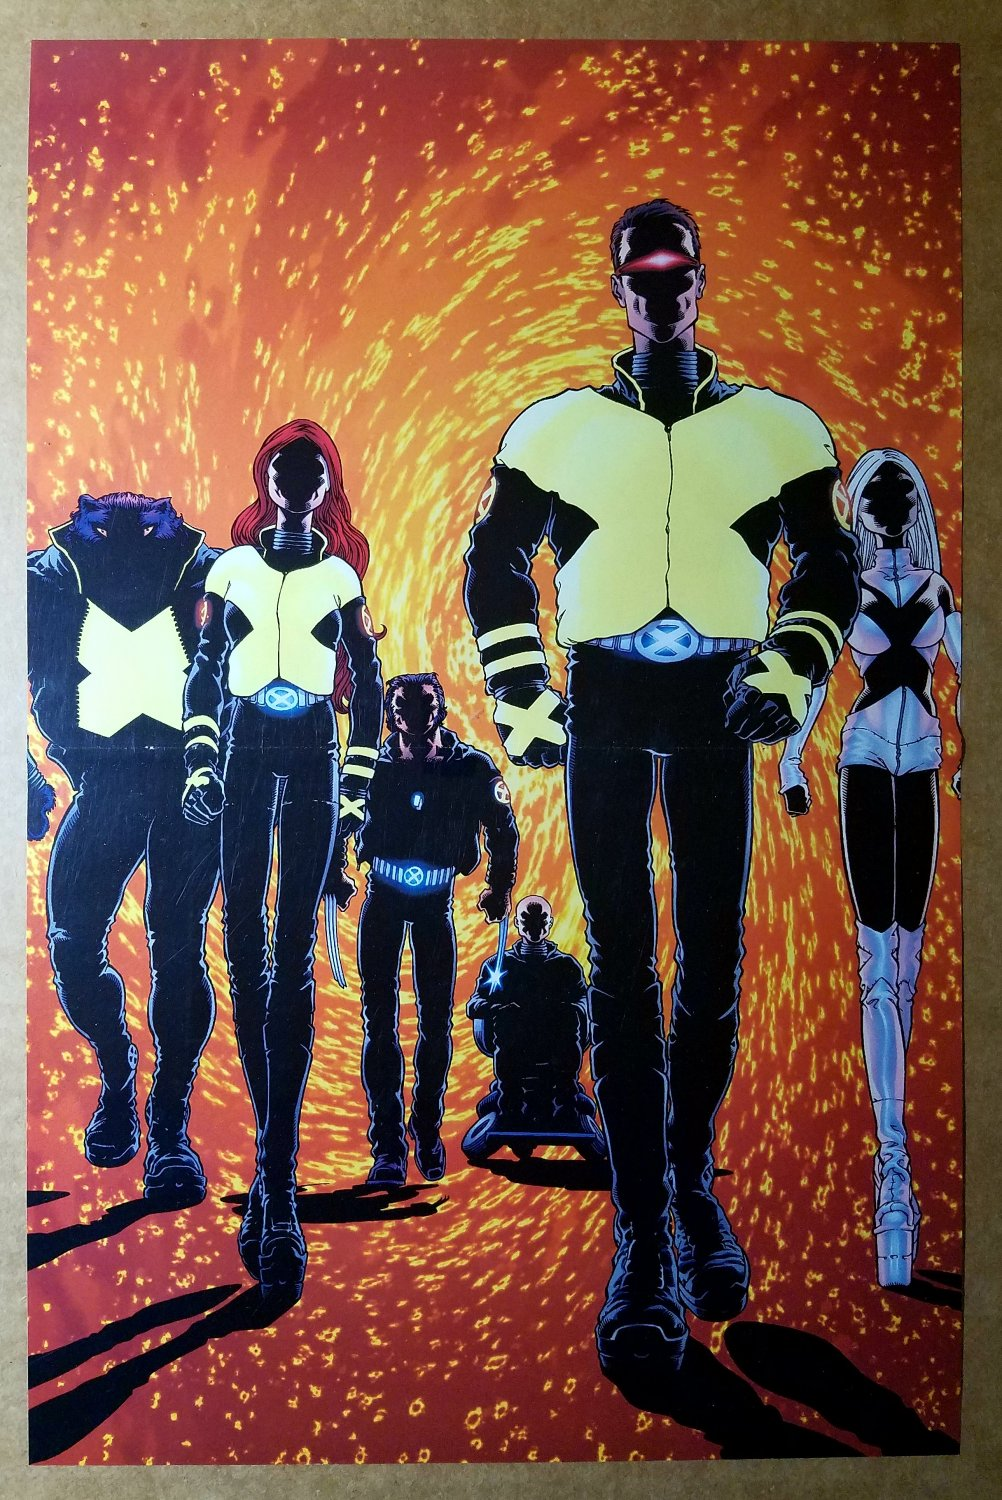 X-Men 114 Wolverine Emma Frost Cyclops Beast Marvel Poster by Frank Quitely